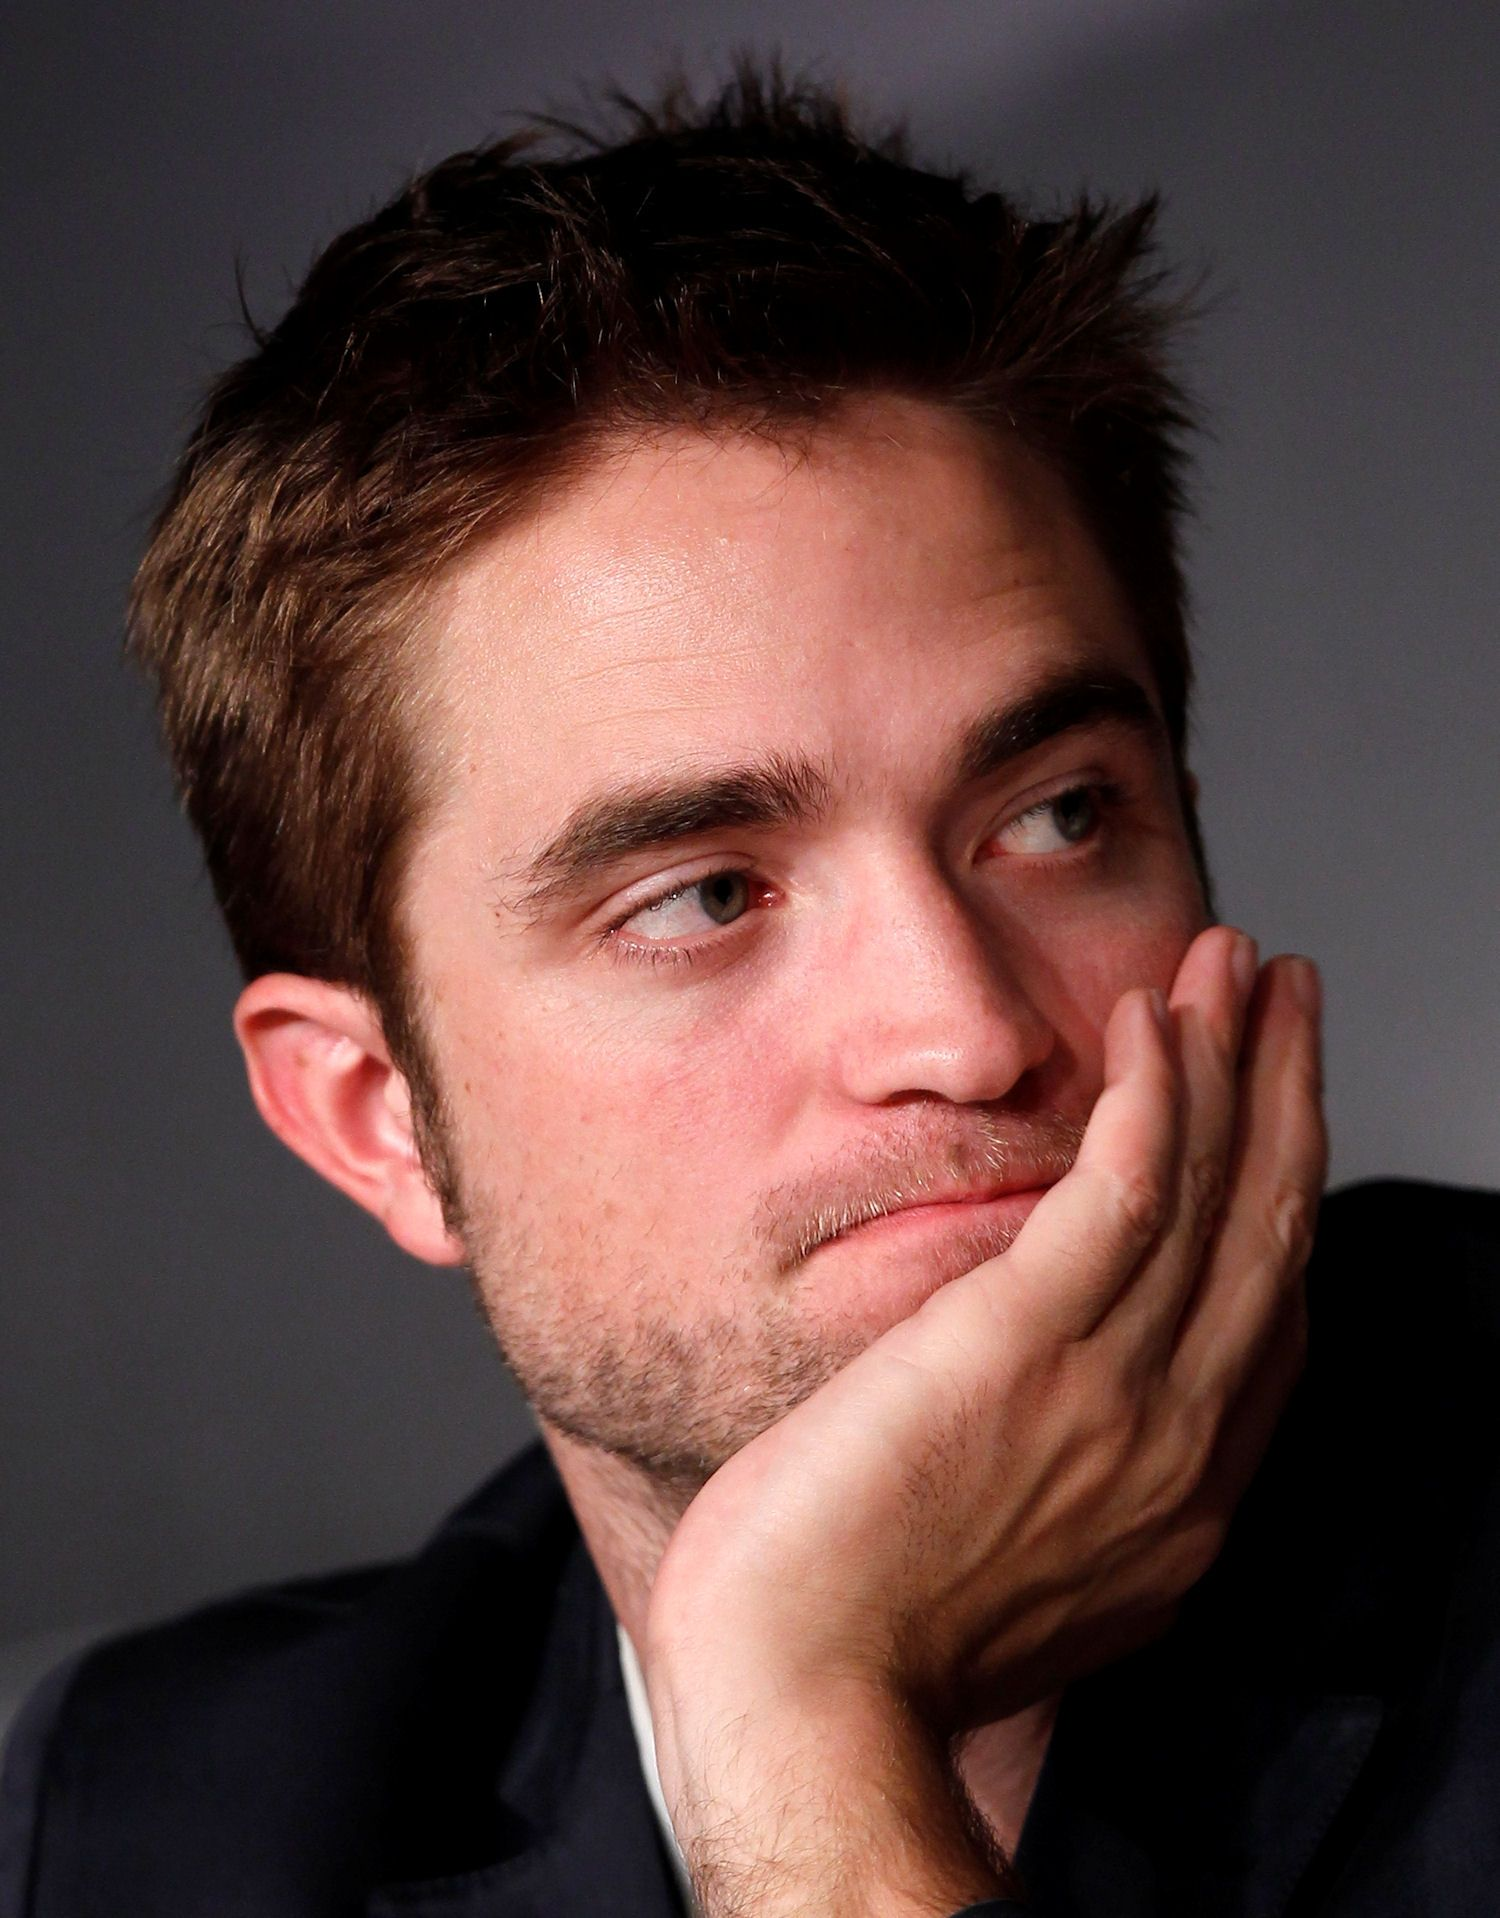 Celebrities with nose piercing  Pin by Shelly H on Robert  Cosmopolis promo  Pinterest  Photos